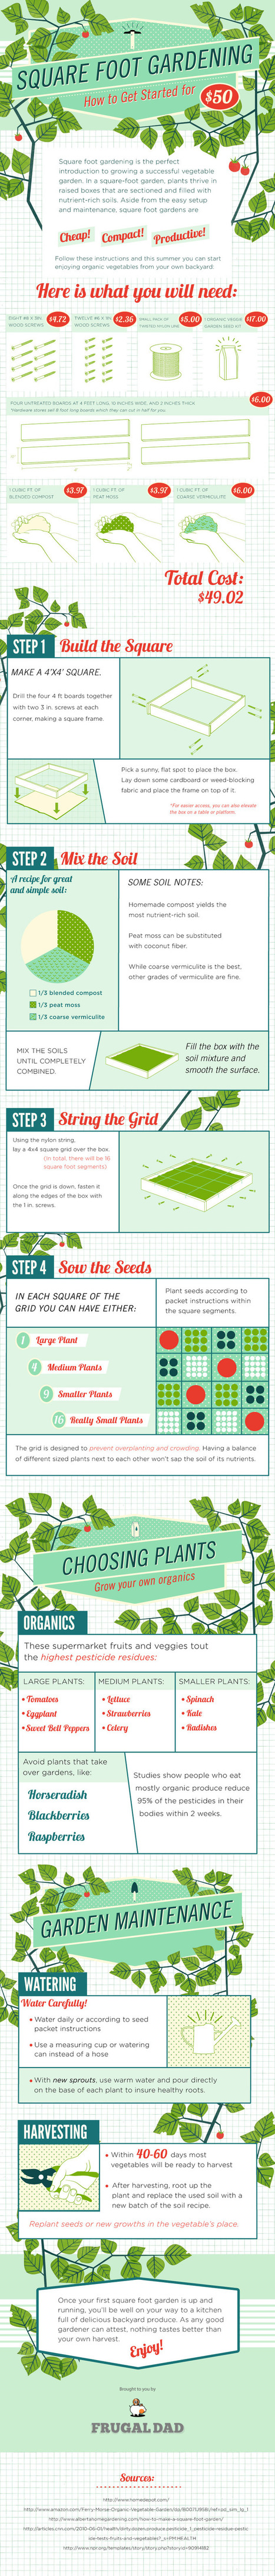 How to start your own square foot garden | Gardening Life | Scoop.it